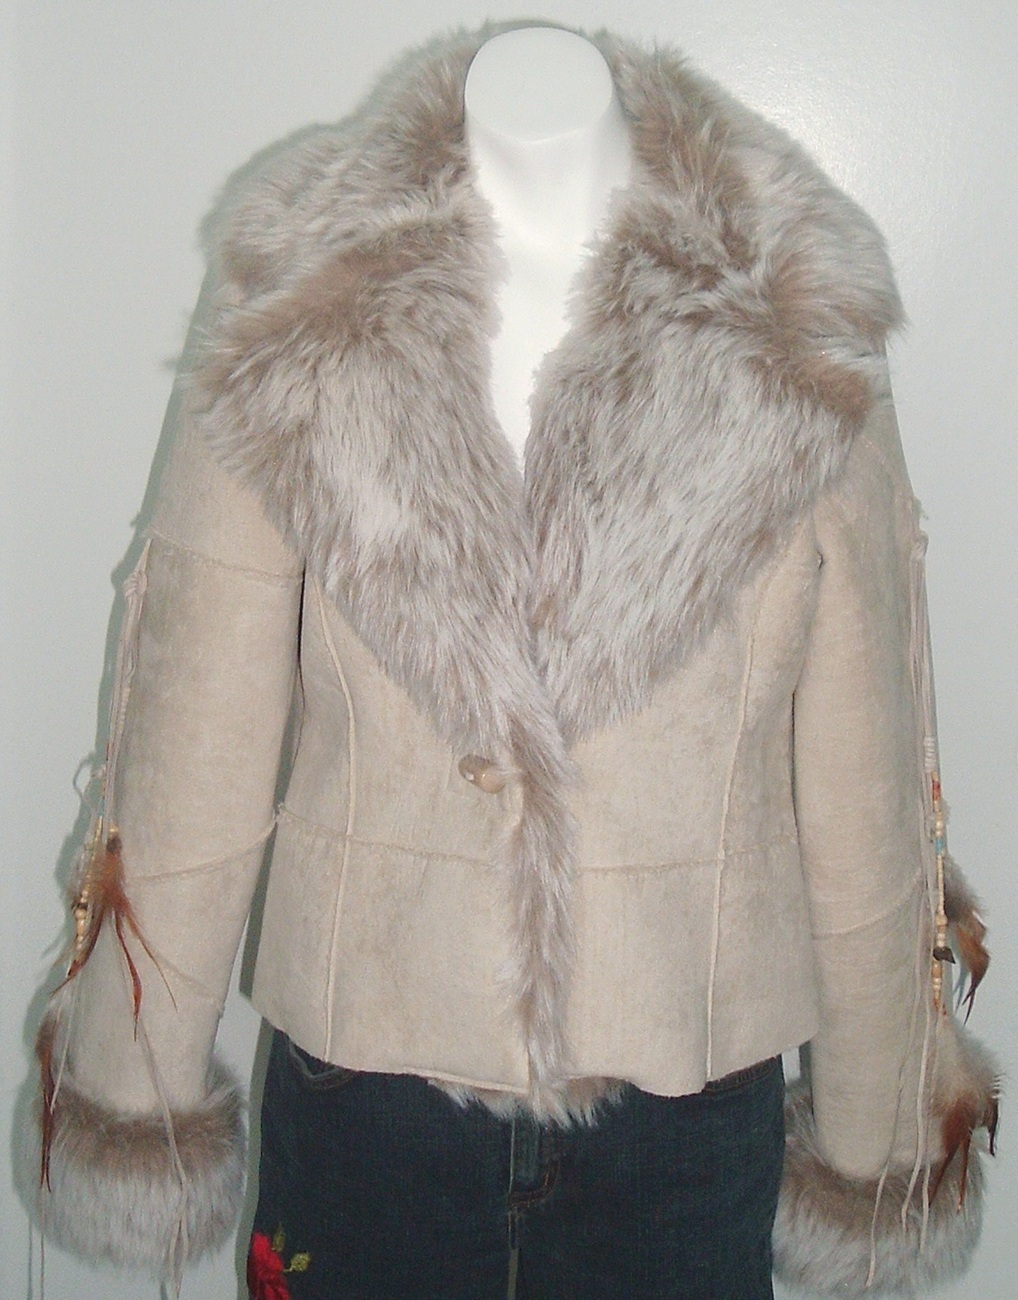 Faux Fur Southwest Style Feather Jacket Coat Size MEDIUM NWT